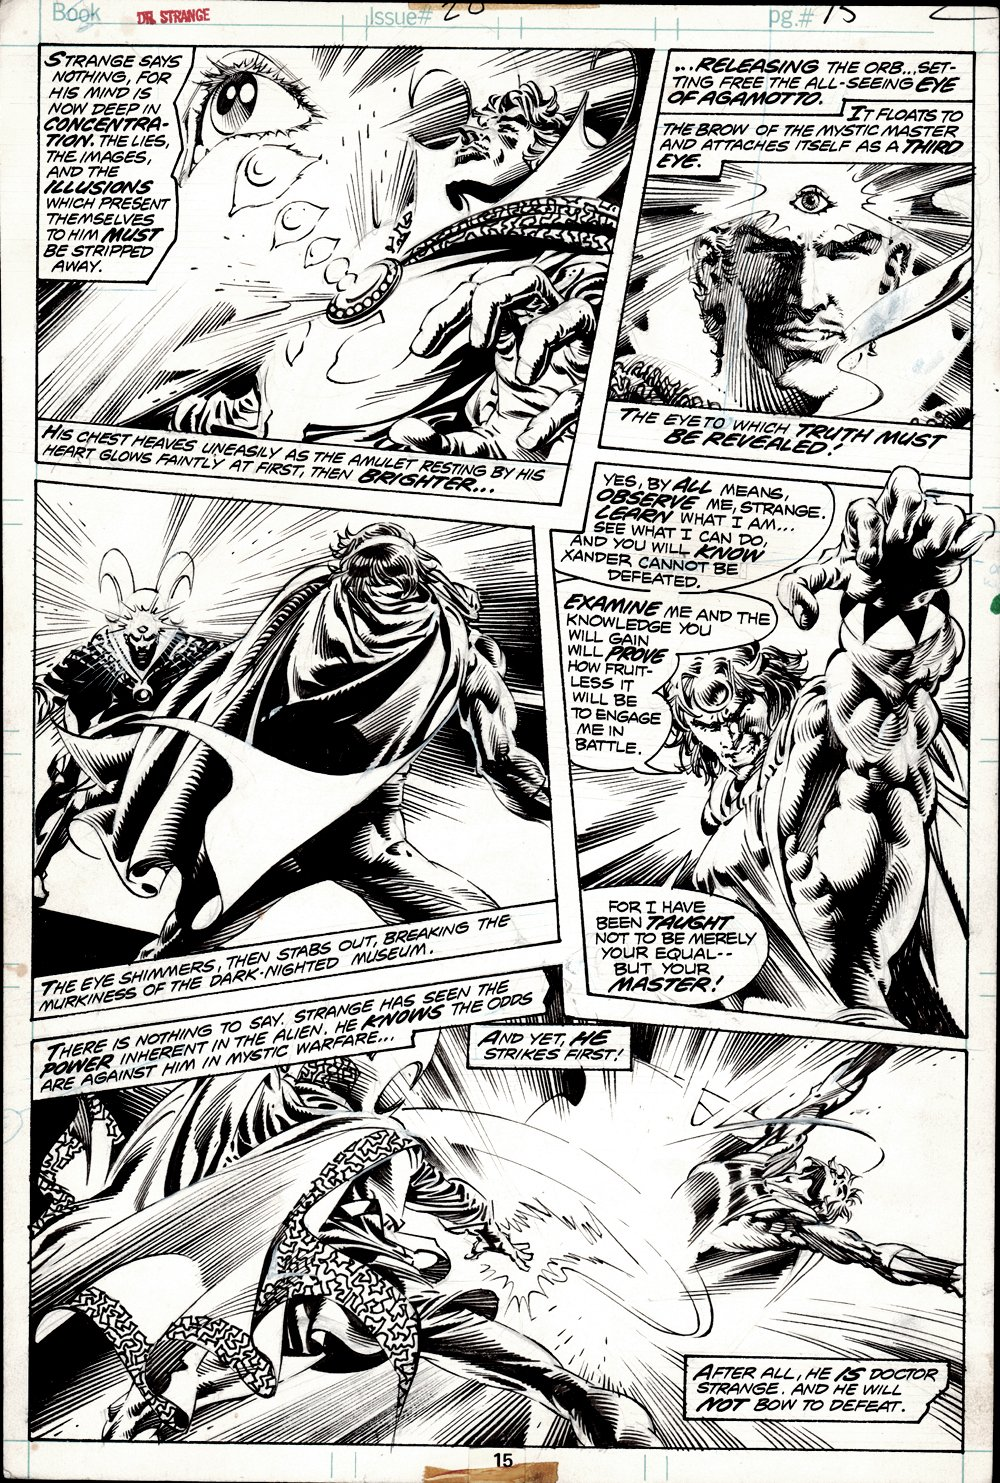 Doctor Strange #20 p 15 (Doctor Strange Battles Xander The Merciless In EVERY PANEL!) 1976